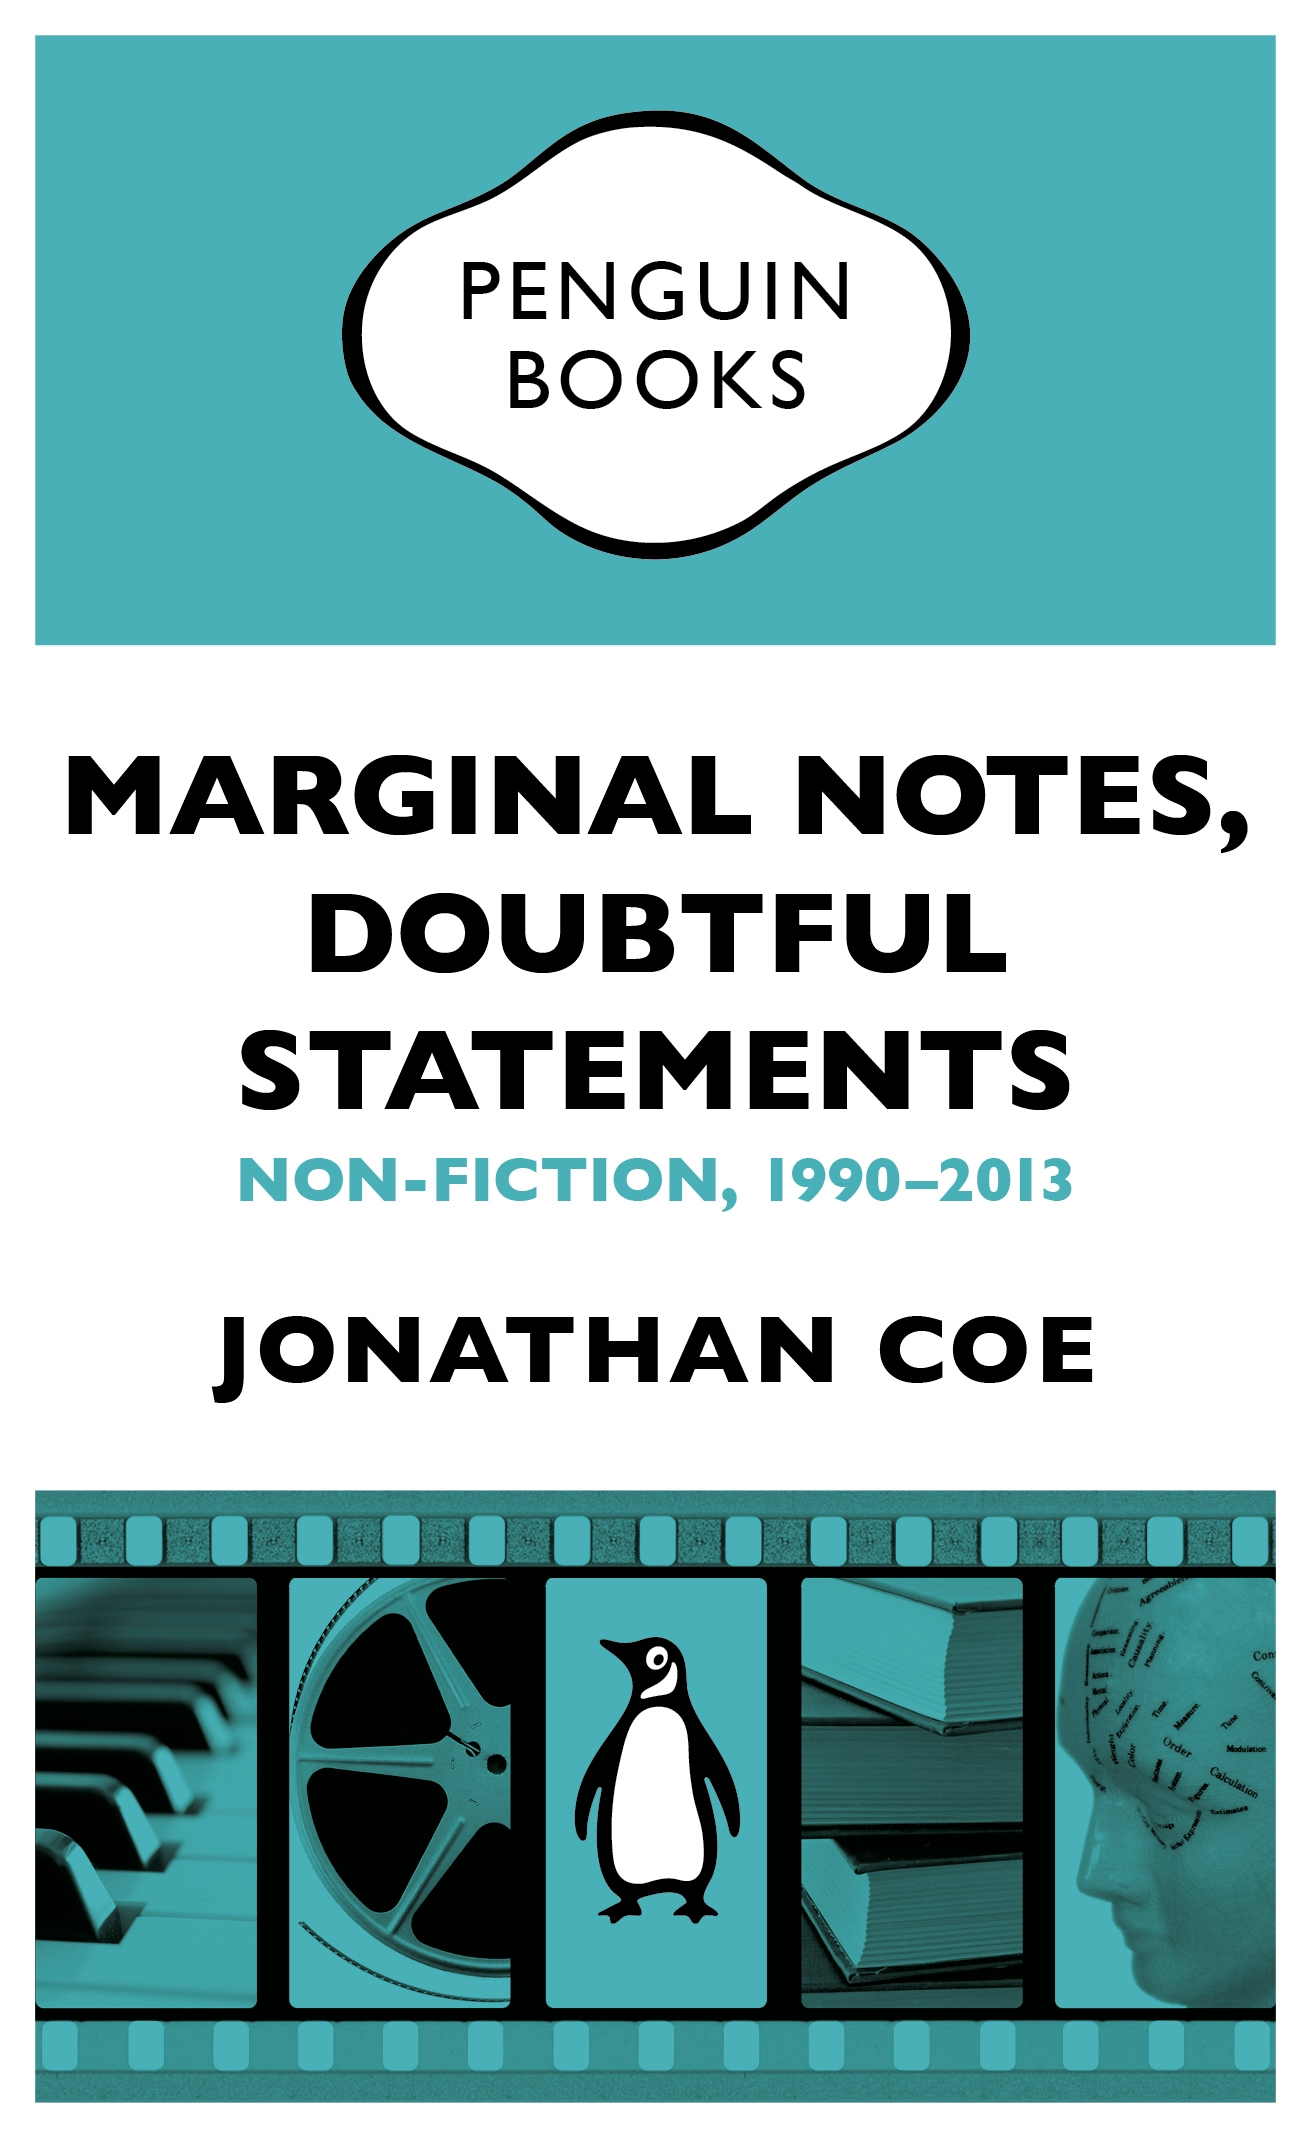 Marginal Notes, Doubtful Statements